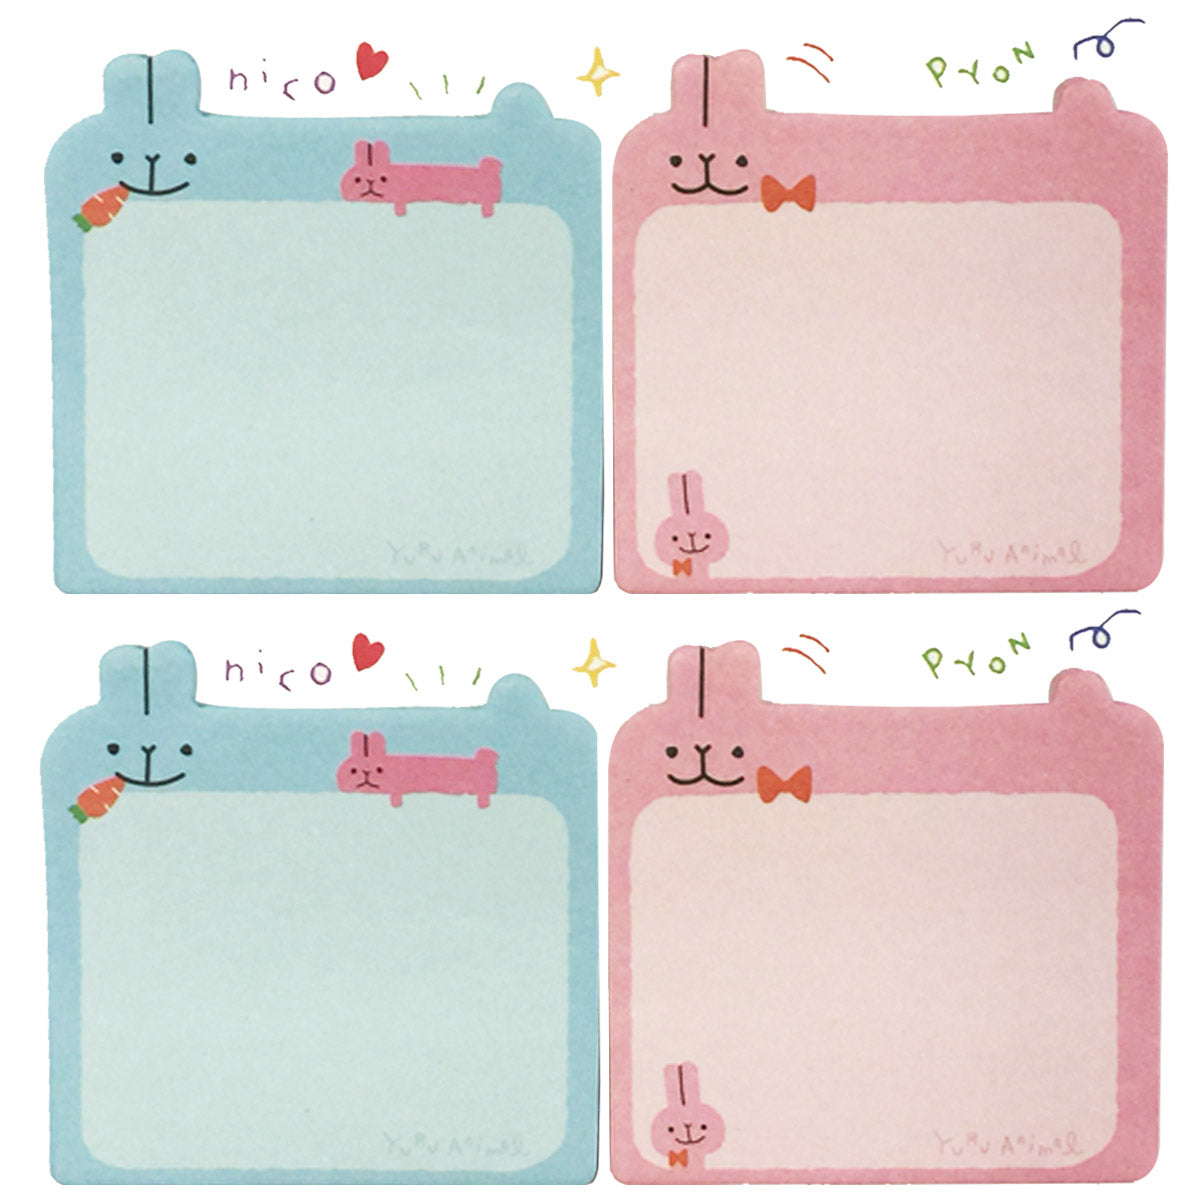 Wrapables Lounging Animal Memo Sticky Note (Set of 2)